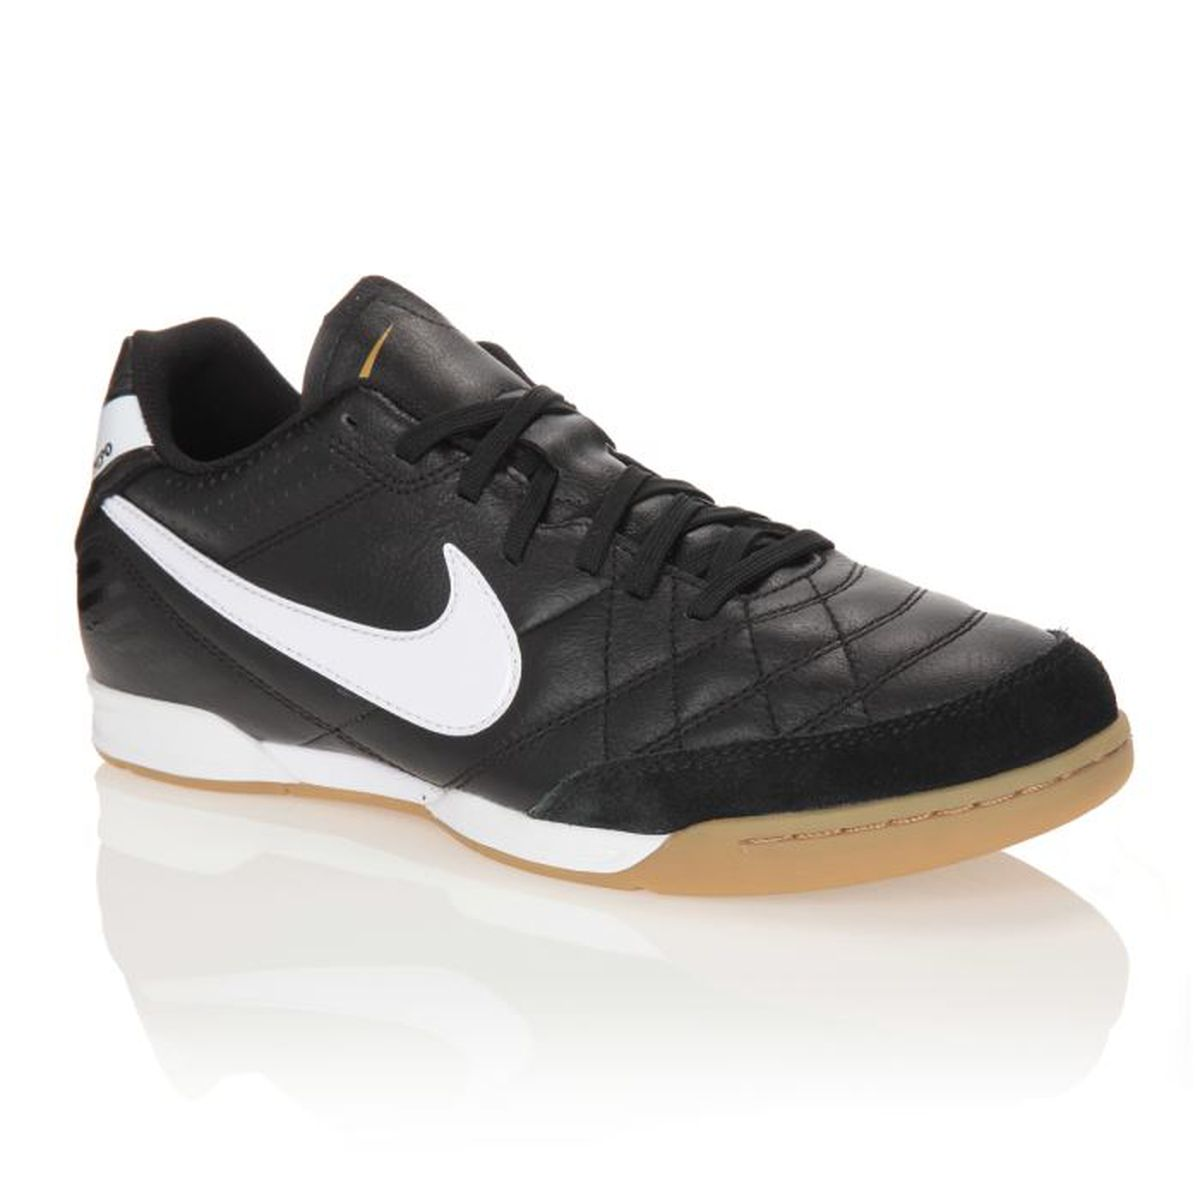 cheaper 02ca5 8619d CHAUSSURES DE FOOTBALL NIKE Chaussures Tiempo Natural IV Indoor